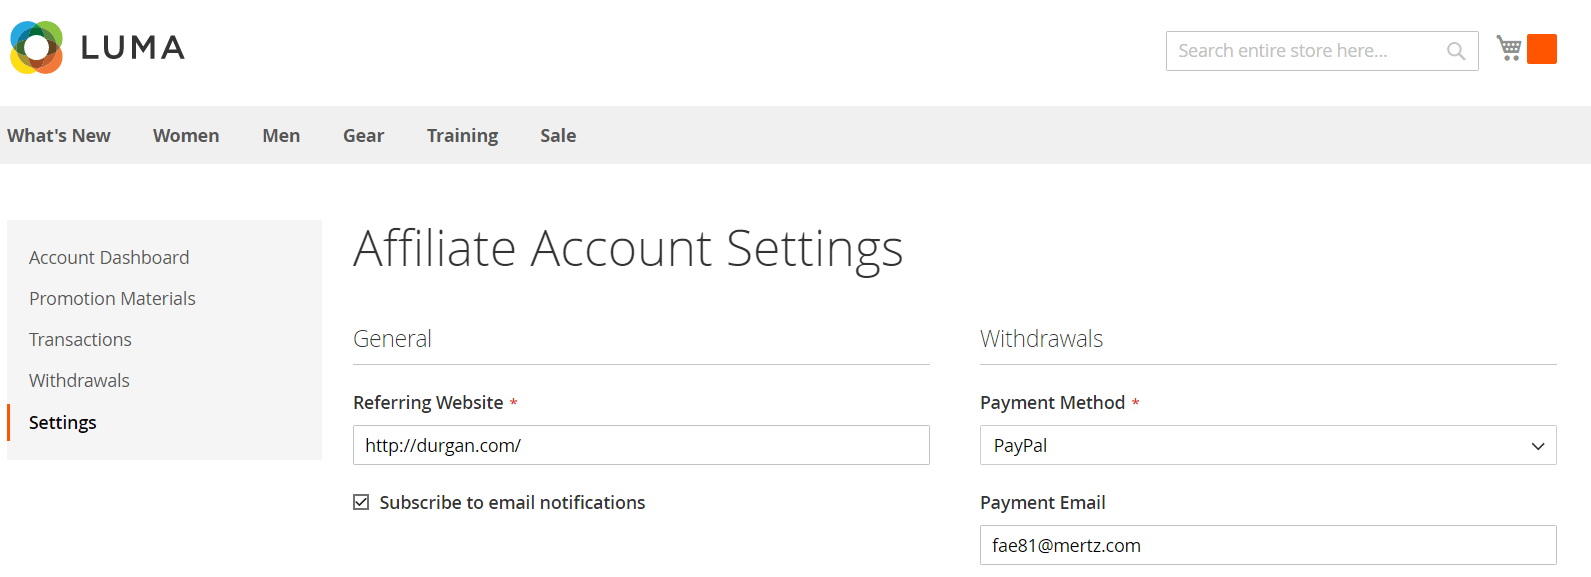 Affiliate Account Settings